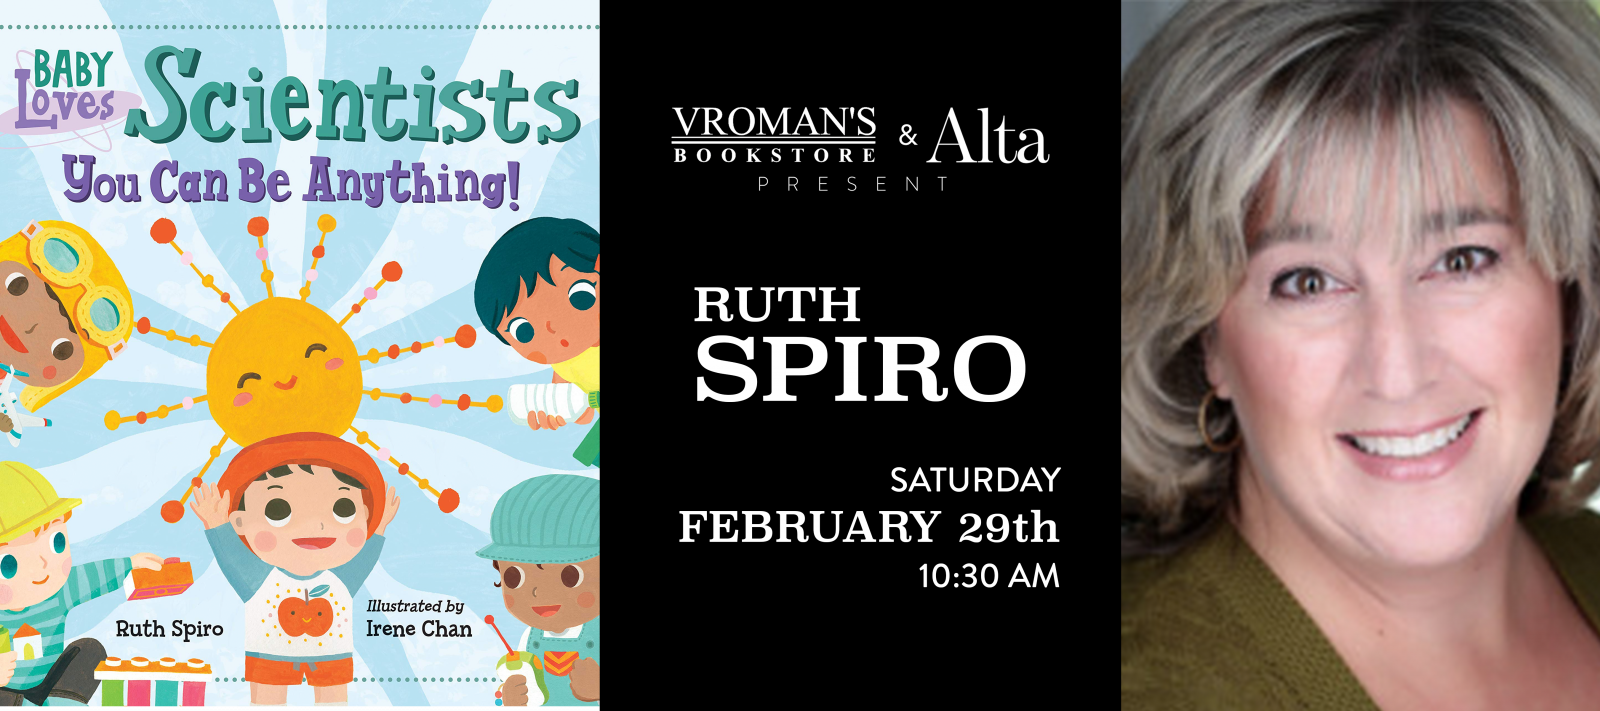 Ruth Spiro book signing Saturday, February 29, at 10:30am